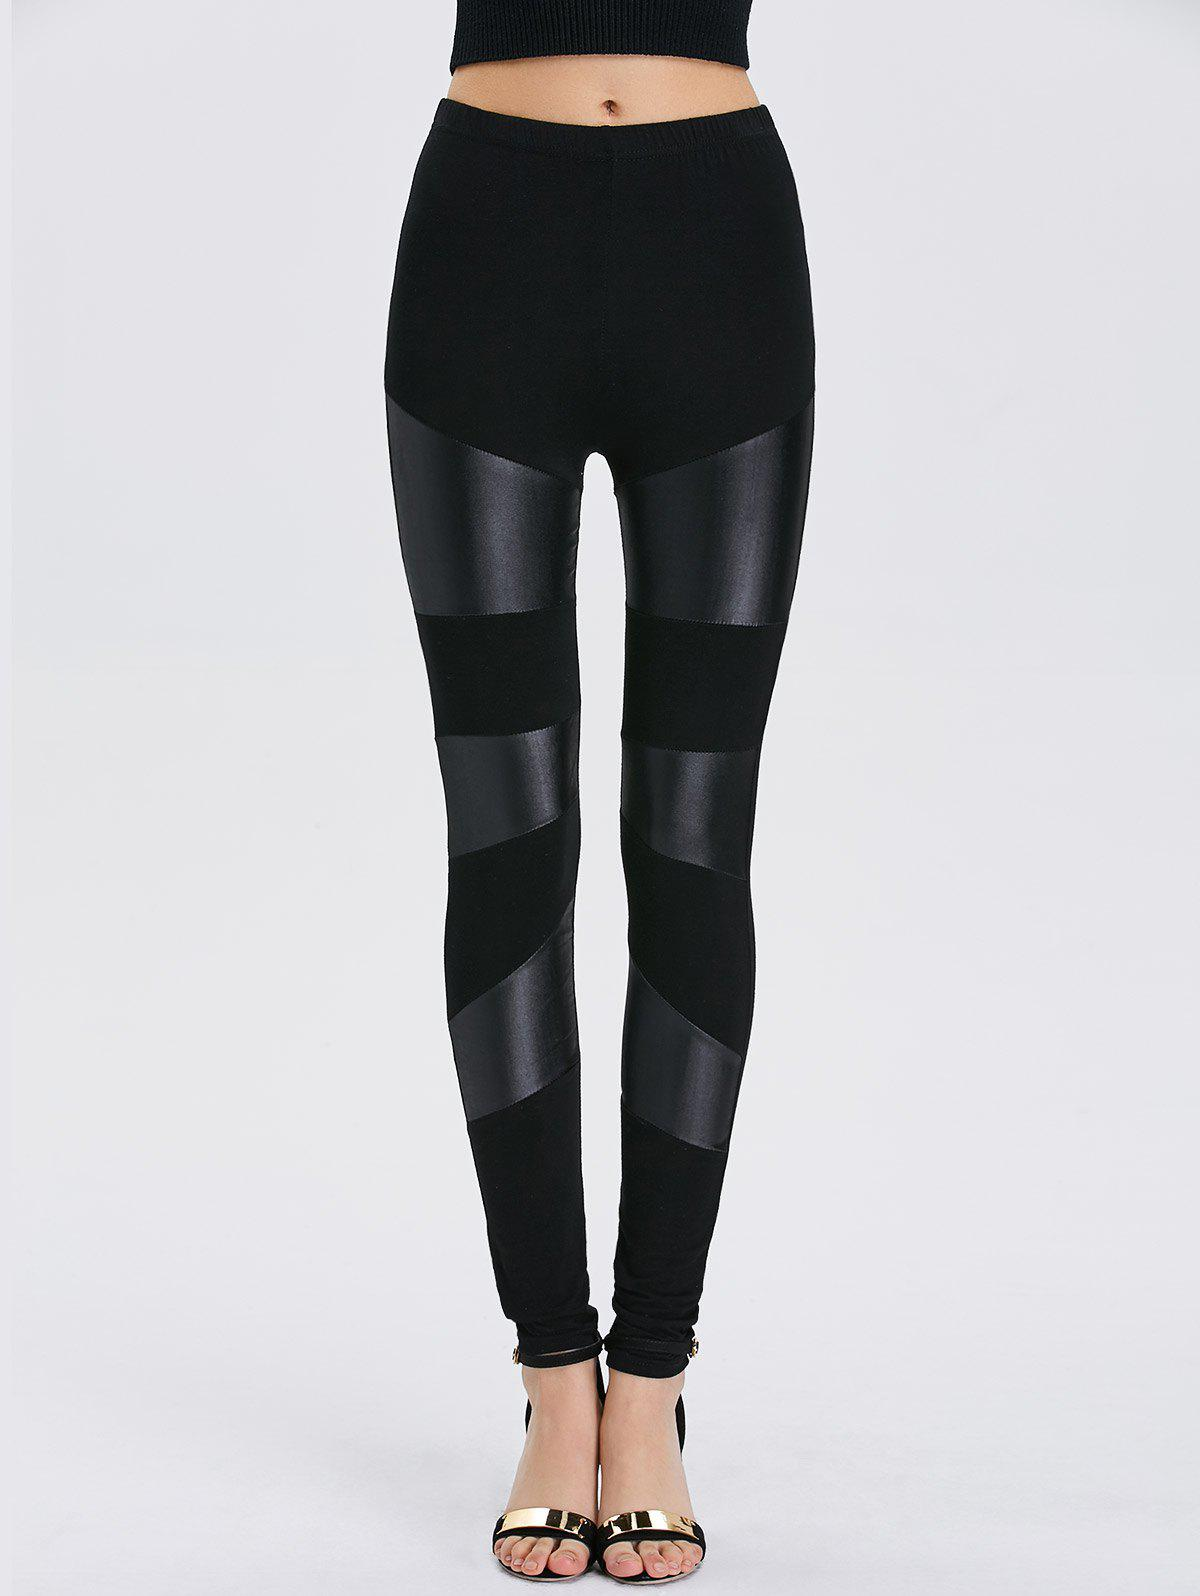 Faux Leather Bodycon LeggingsWOMEN<br><br>Size: ONE SIZE; Color: BLACK; Style: Punk; Material: Spandex; Waist Type: High; Pattern Type: Patchwork; Weight: 0.2000kg; Package Contents: 1 x Leggings;